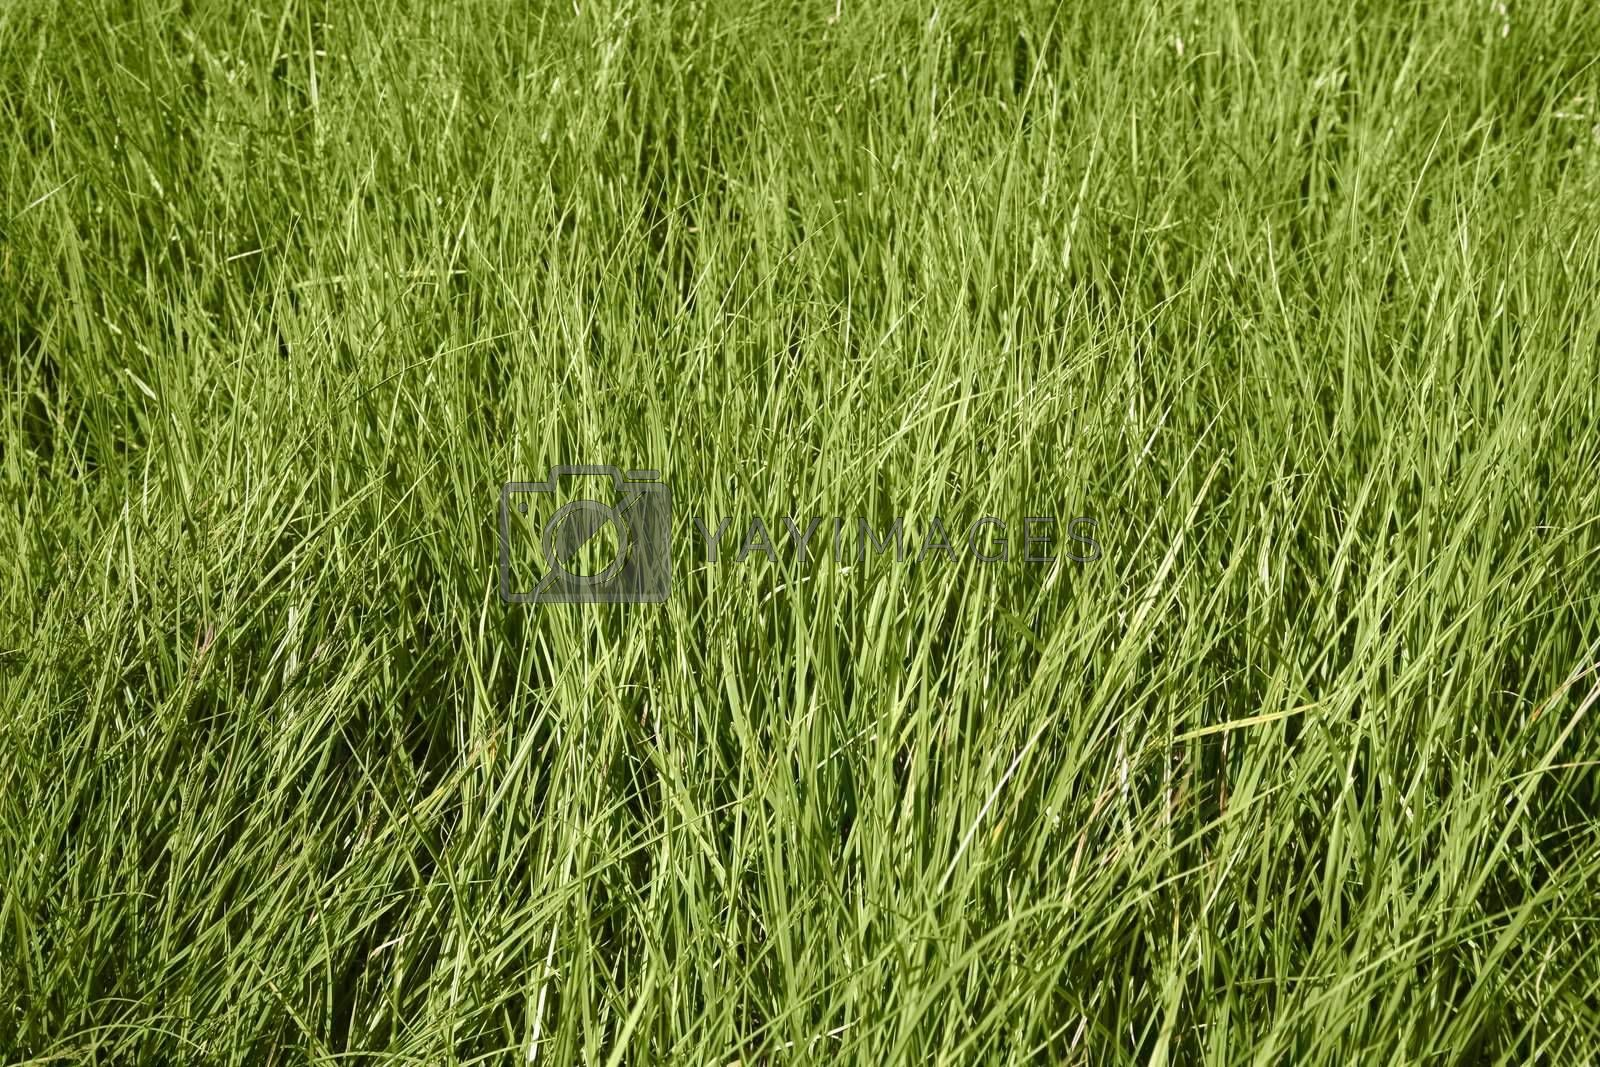 Royalty free image of Grass 3 by scrappinstacy